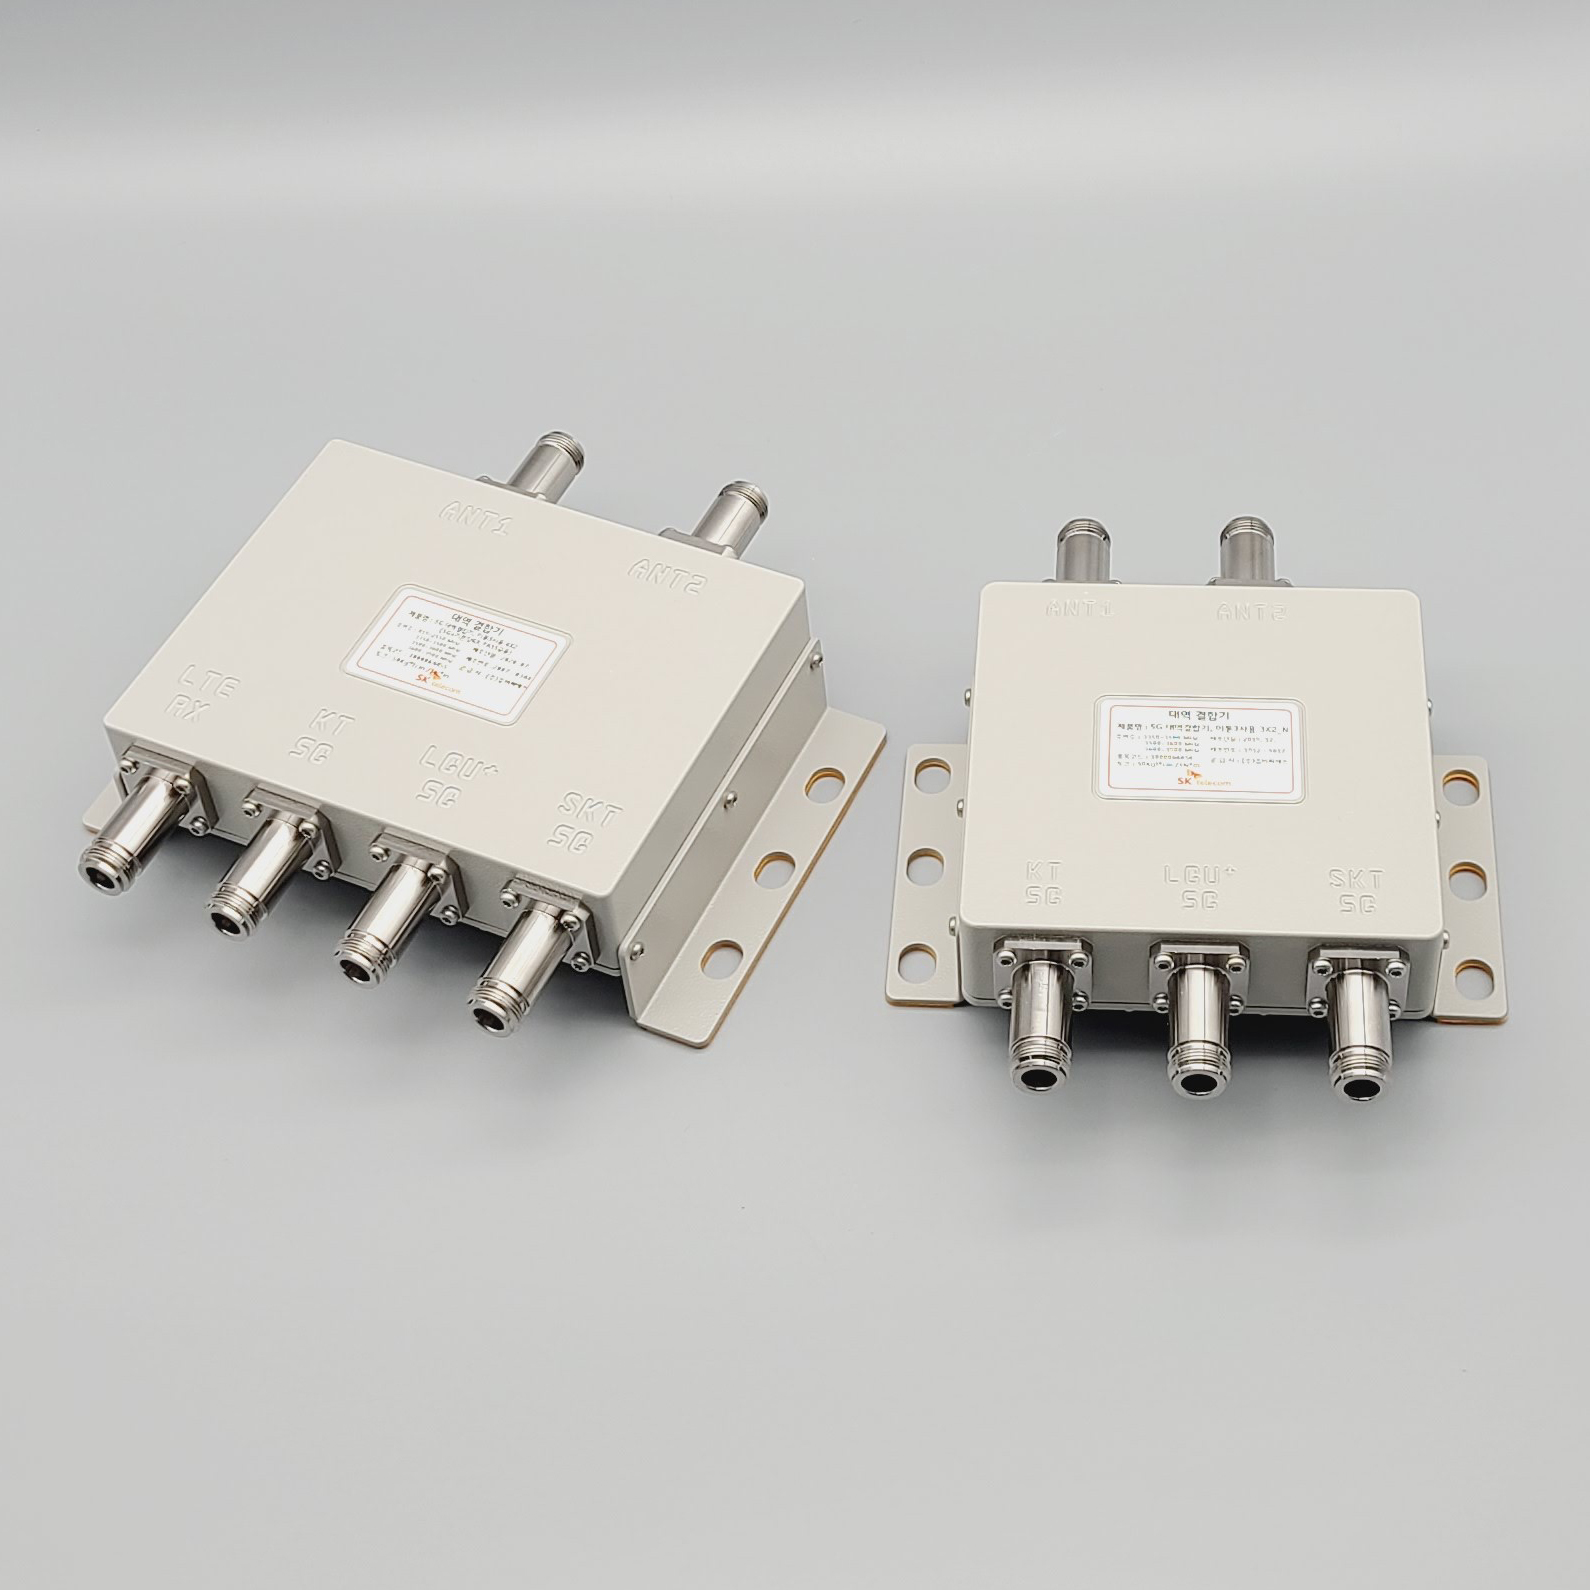 Combiners of UBCS Co., Ltd. are generally used to combine RF power in an environment where character...